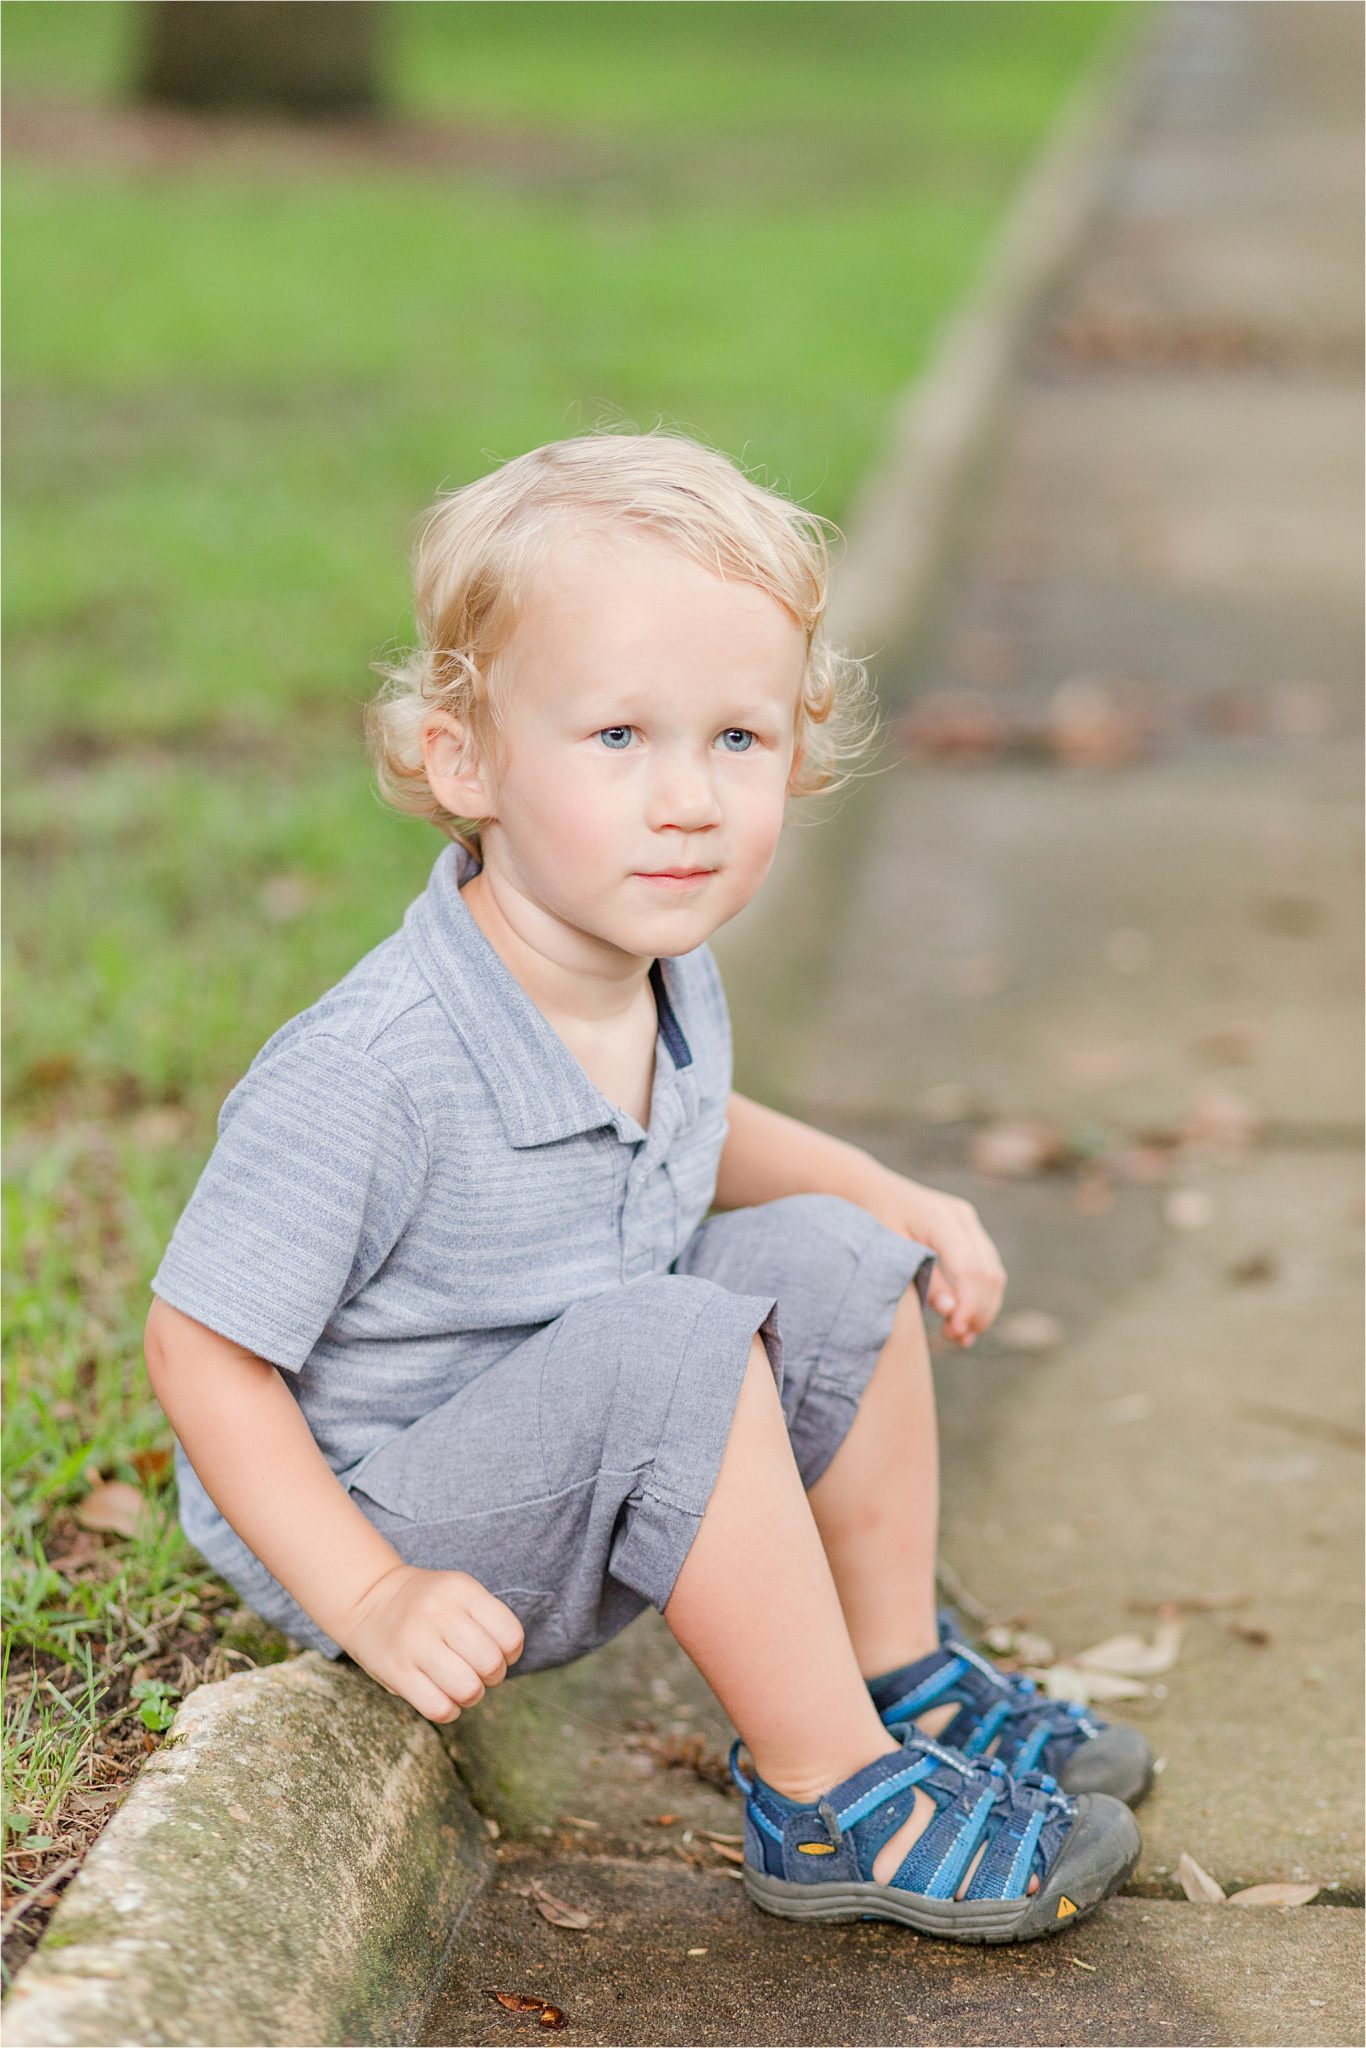 Toddler photography-Alabama photographer-pics of kids-child portraits-family photos